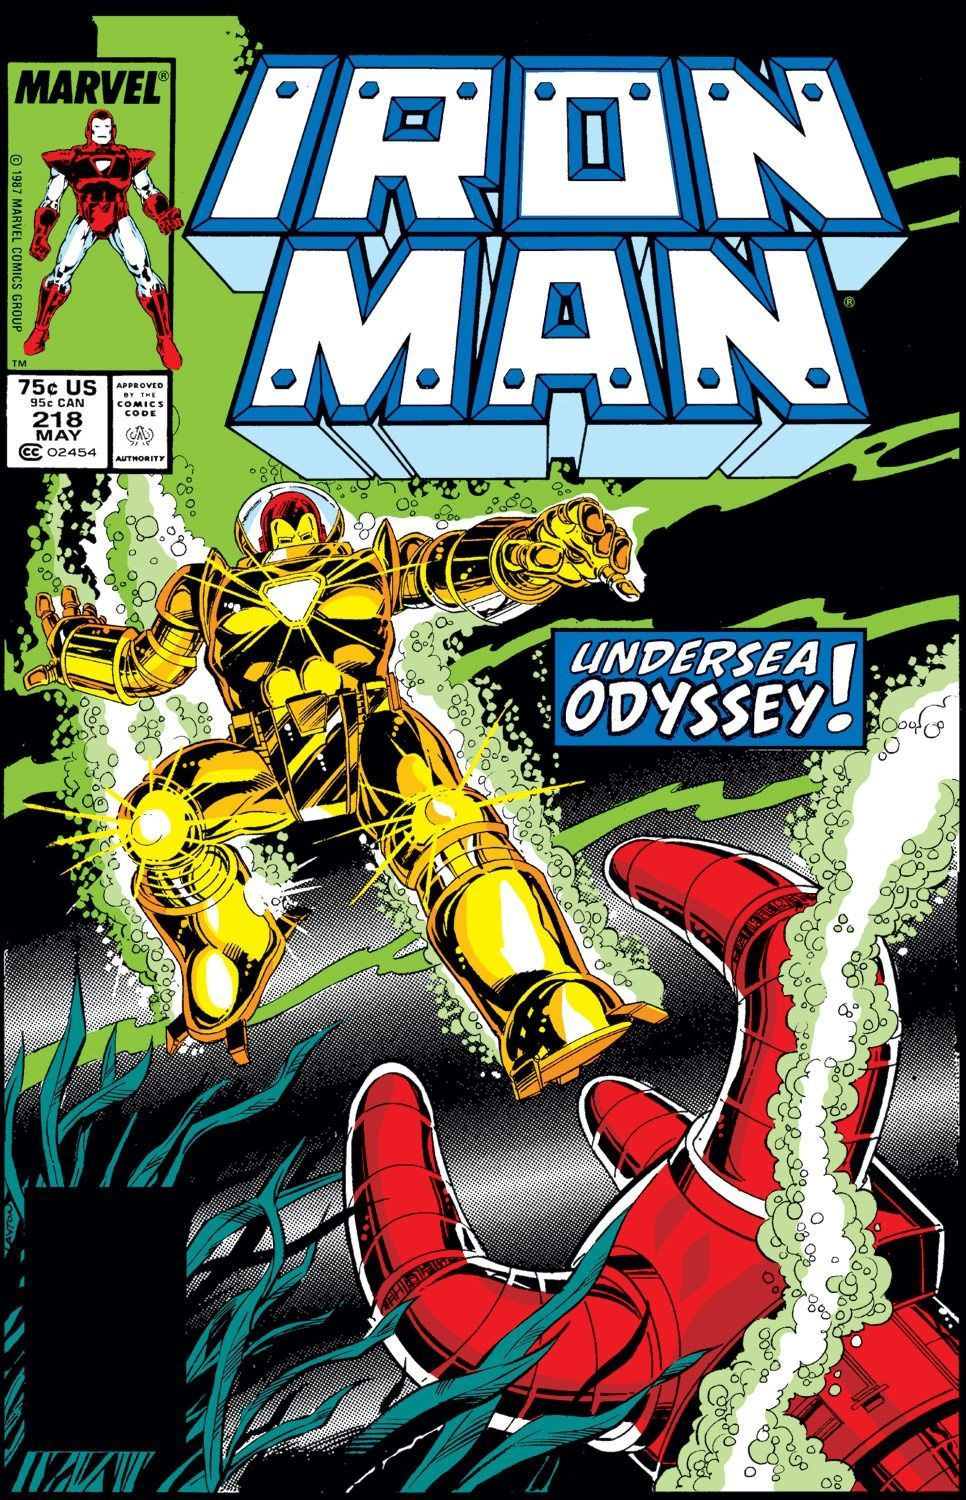 Iron Man #218 - Deep Trouble! released by Marvel Comics on May 1, 1987